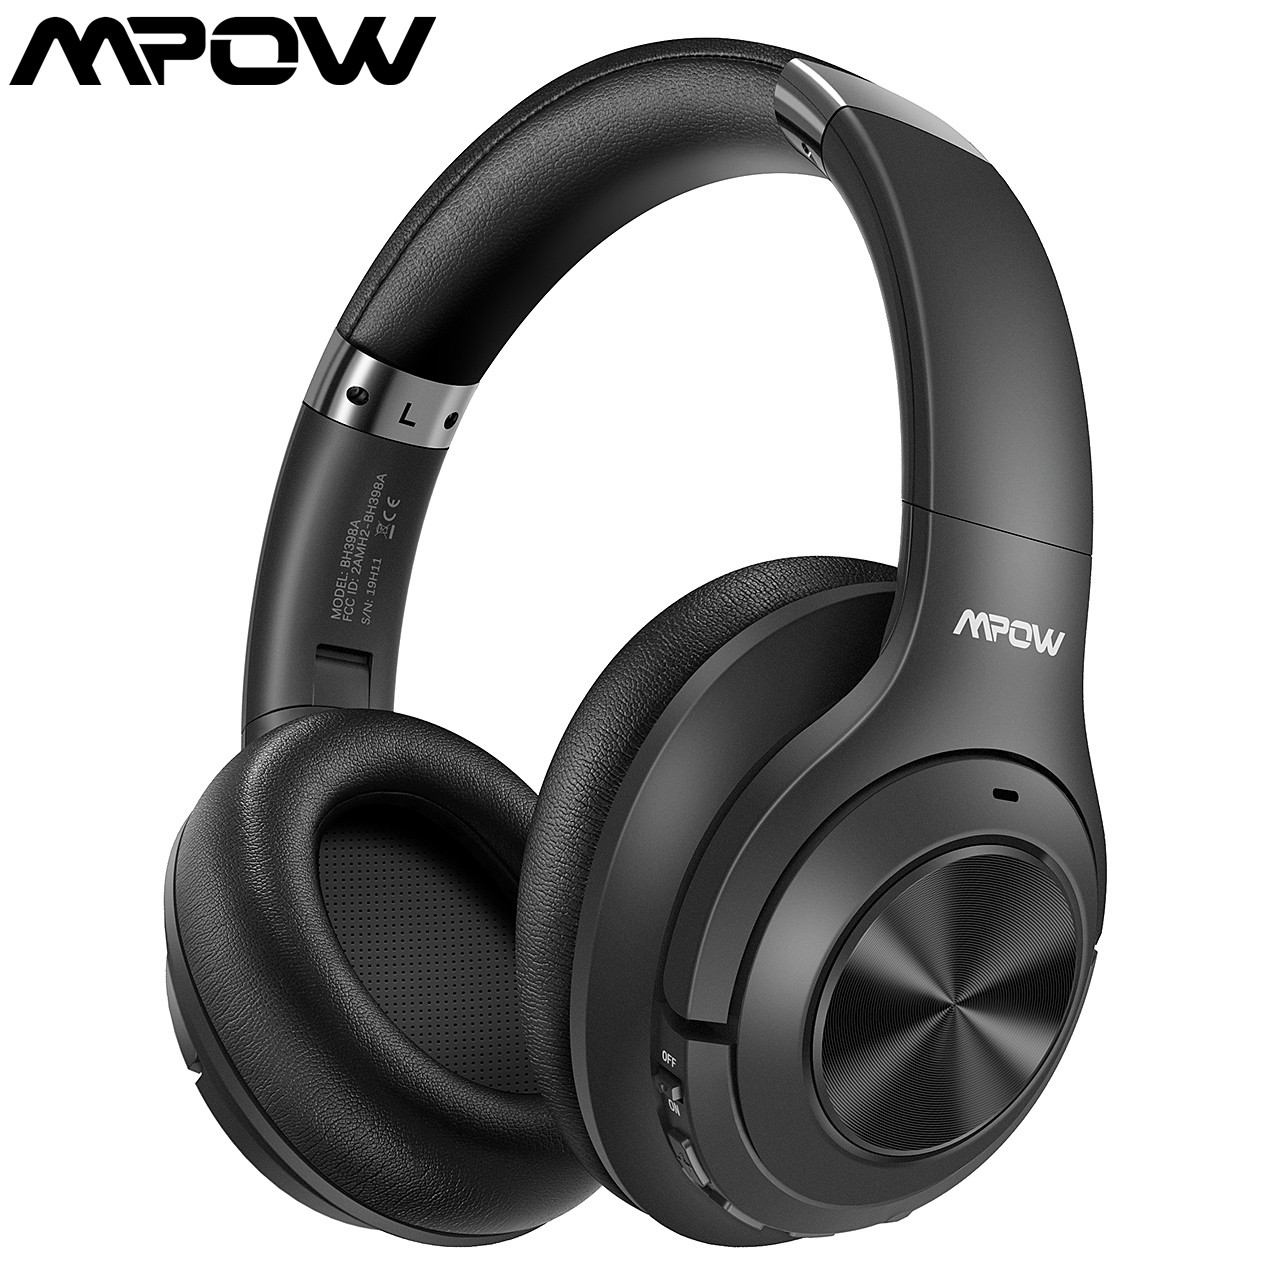 MPOW H21 Bluetooth Wireless 5.0/3.5mm Audio Cable Noise Cancelling Headphones CSR8635 Chip Bass Earphone For Cellphone/PC/Laptop